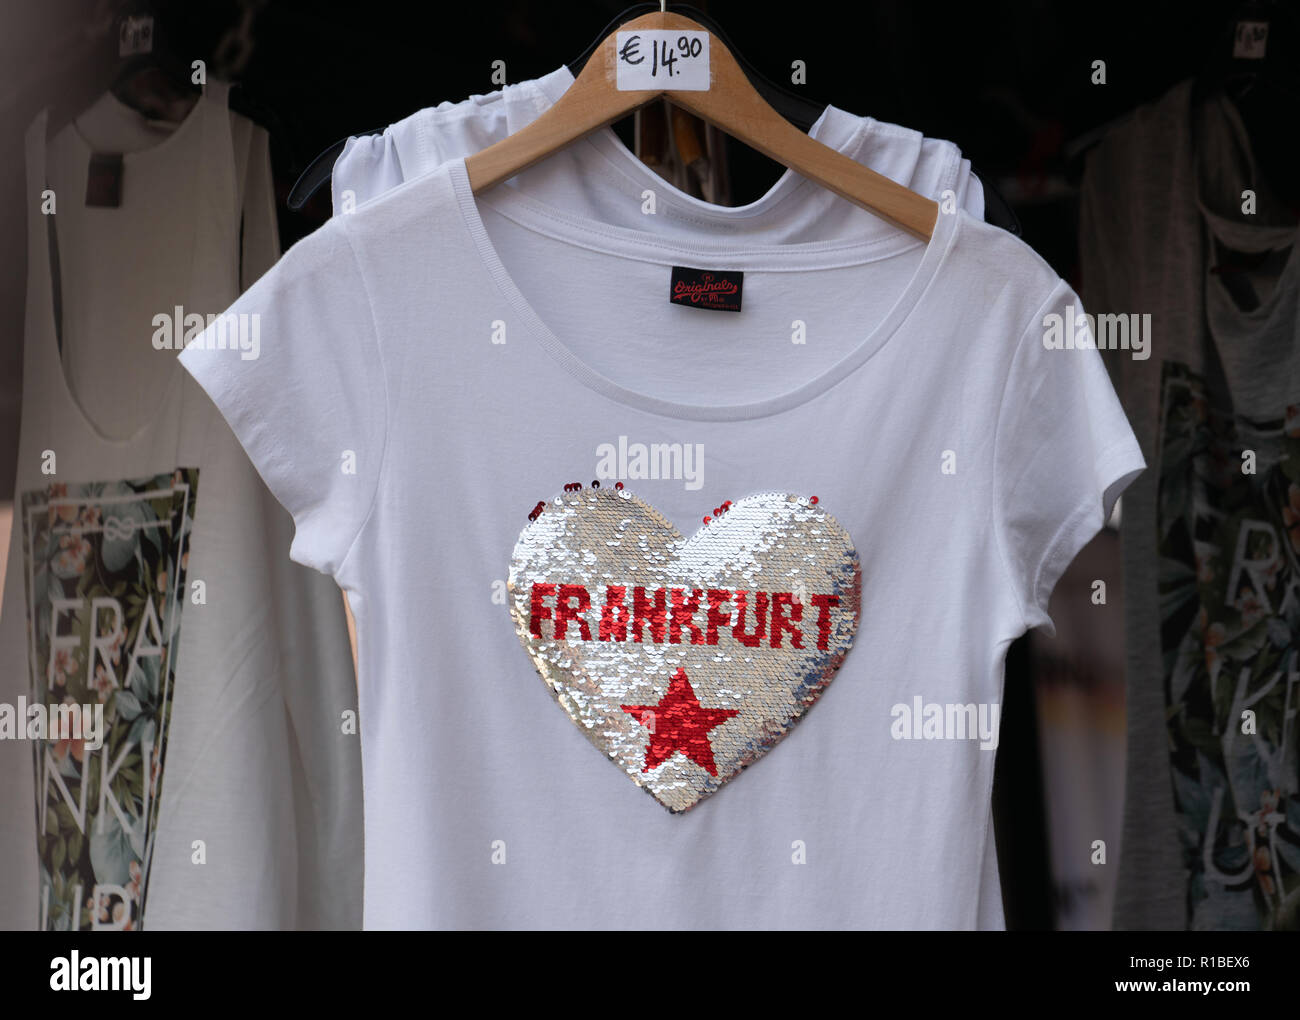 09 November 2018, Hessen, Frankfurt/Main: T-shirts with the glitter inscription 'Frankfurt' in a heart can be bought in a shop on the Römerberg. (to dpa 'Cuddling with Frankfurt, drinking watering: City merchandising booms' from 11.11.2018) Photo: Frank Rumpenhorst/dpa - Stock Image